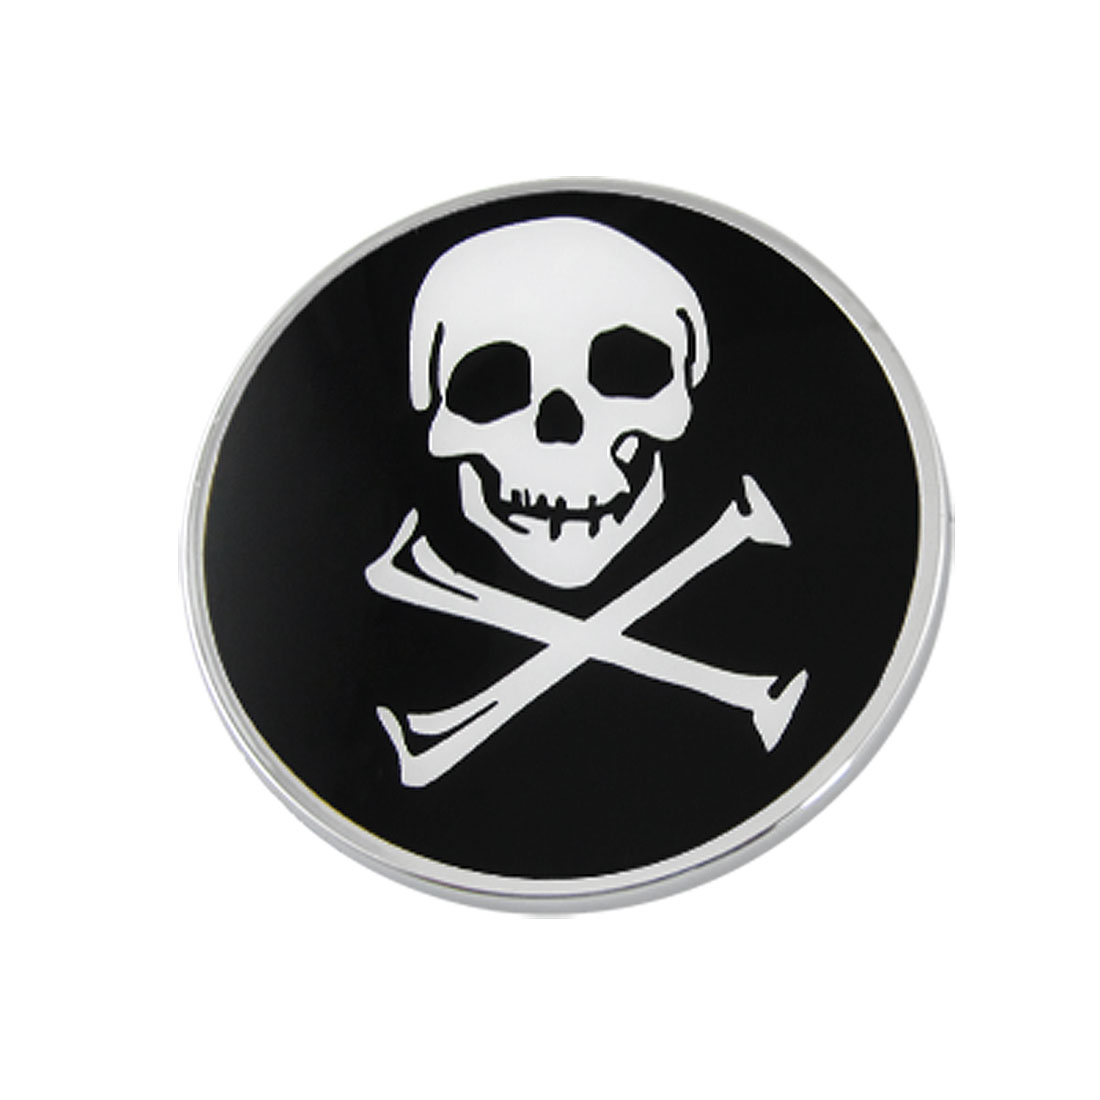 Black White Skull Heads Printted Sticker Decor for Car